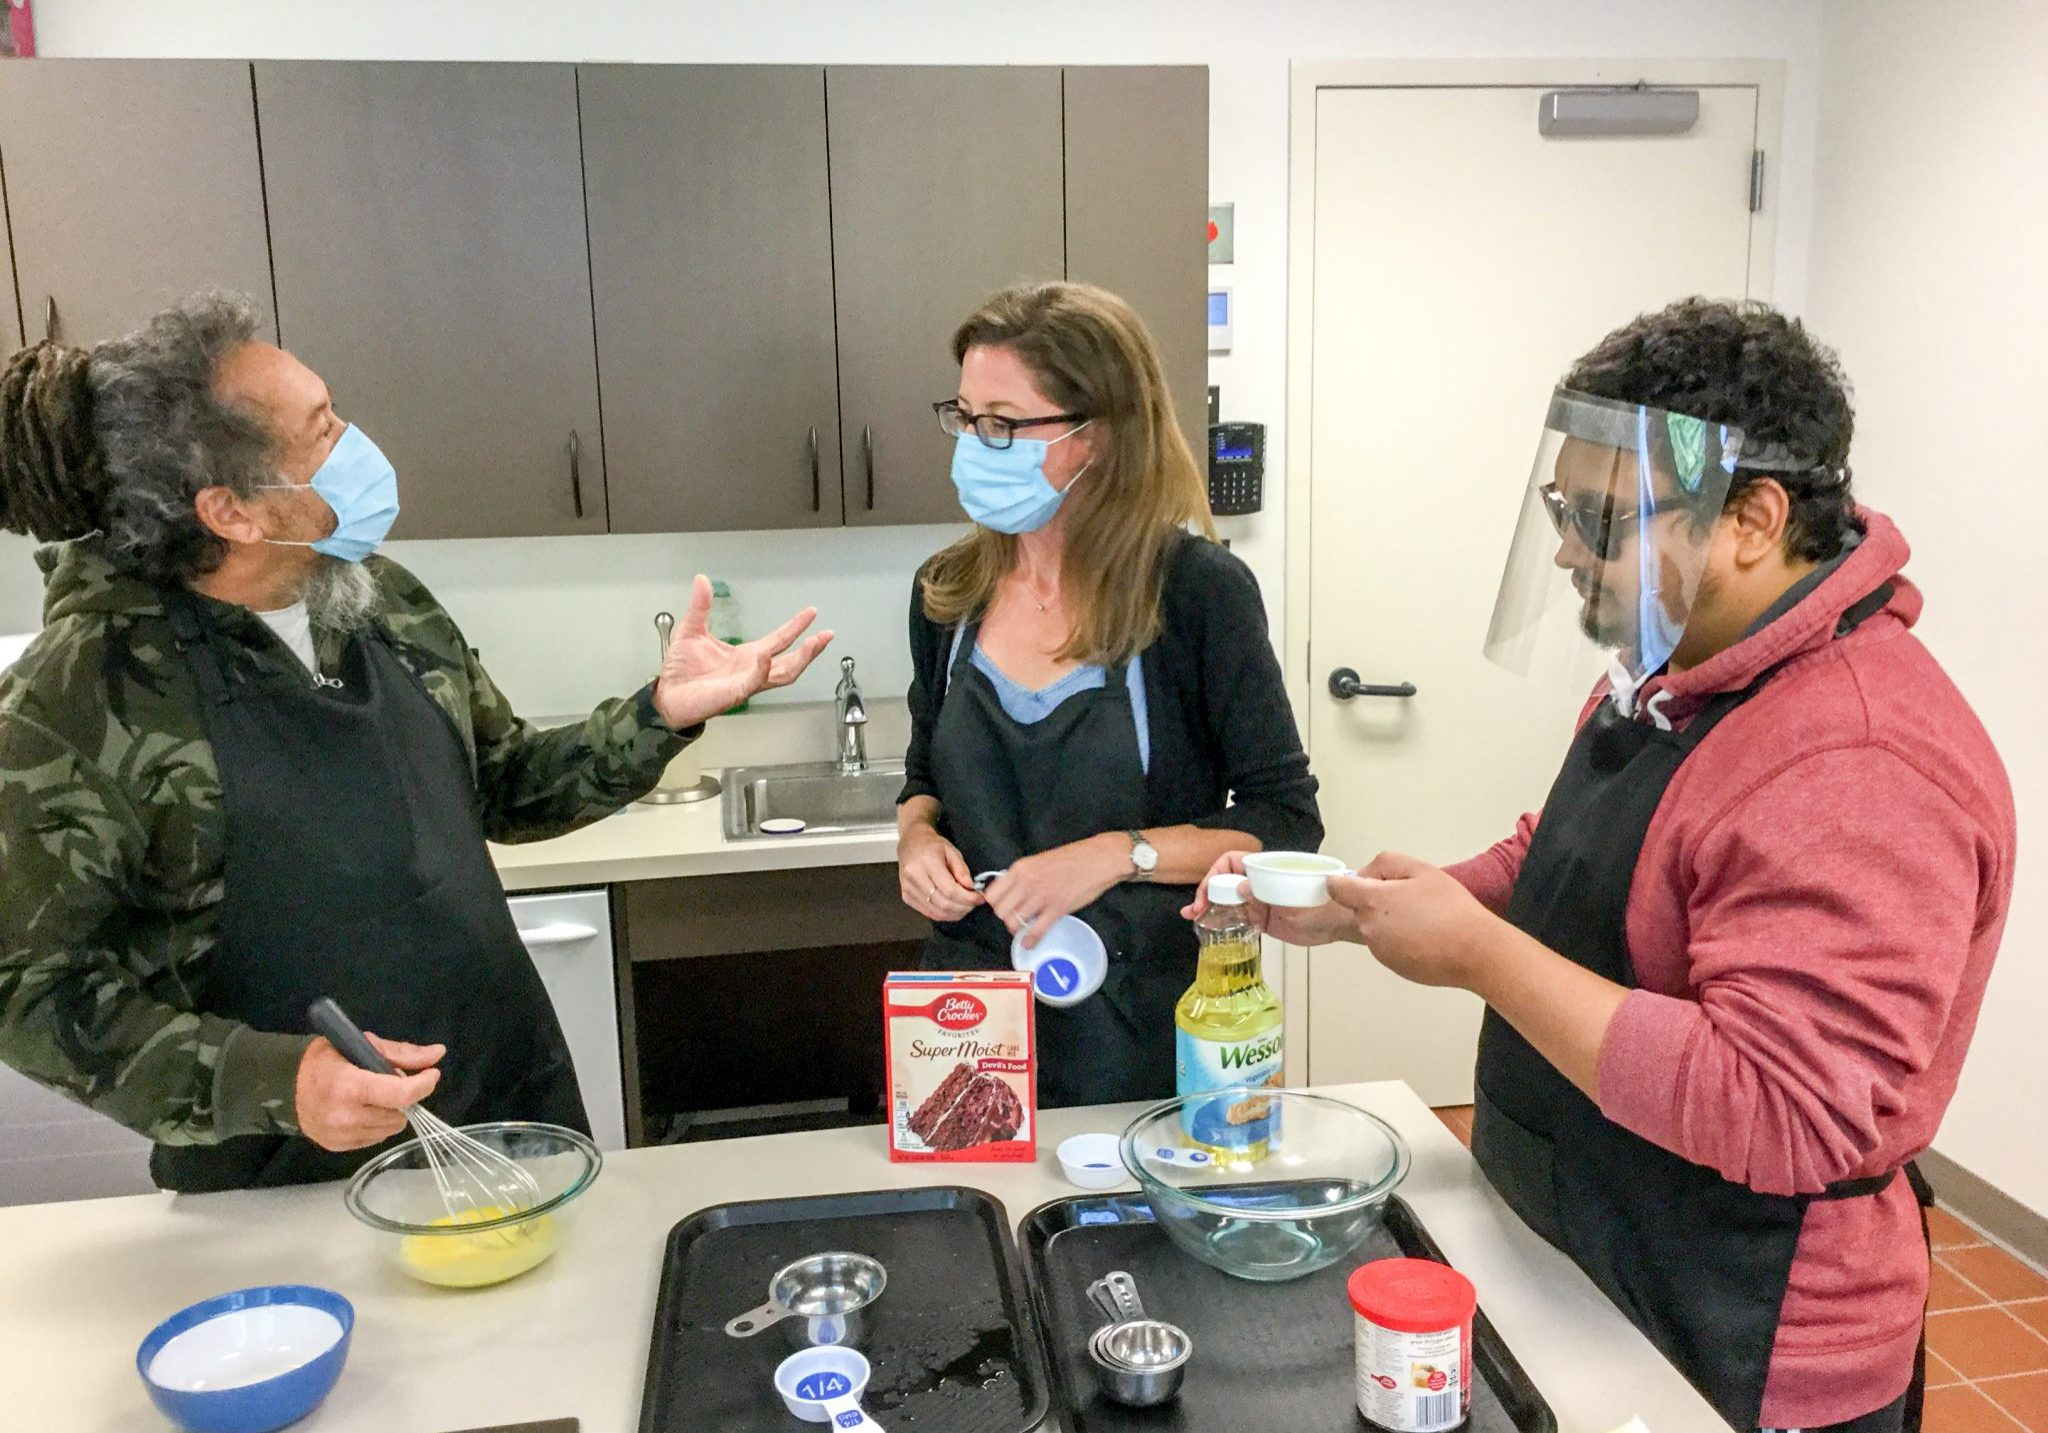 Two participants and an instructor all wearing masks stand in a kitchen and make brownies, utilizing adaptive kitchen tools.